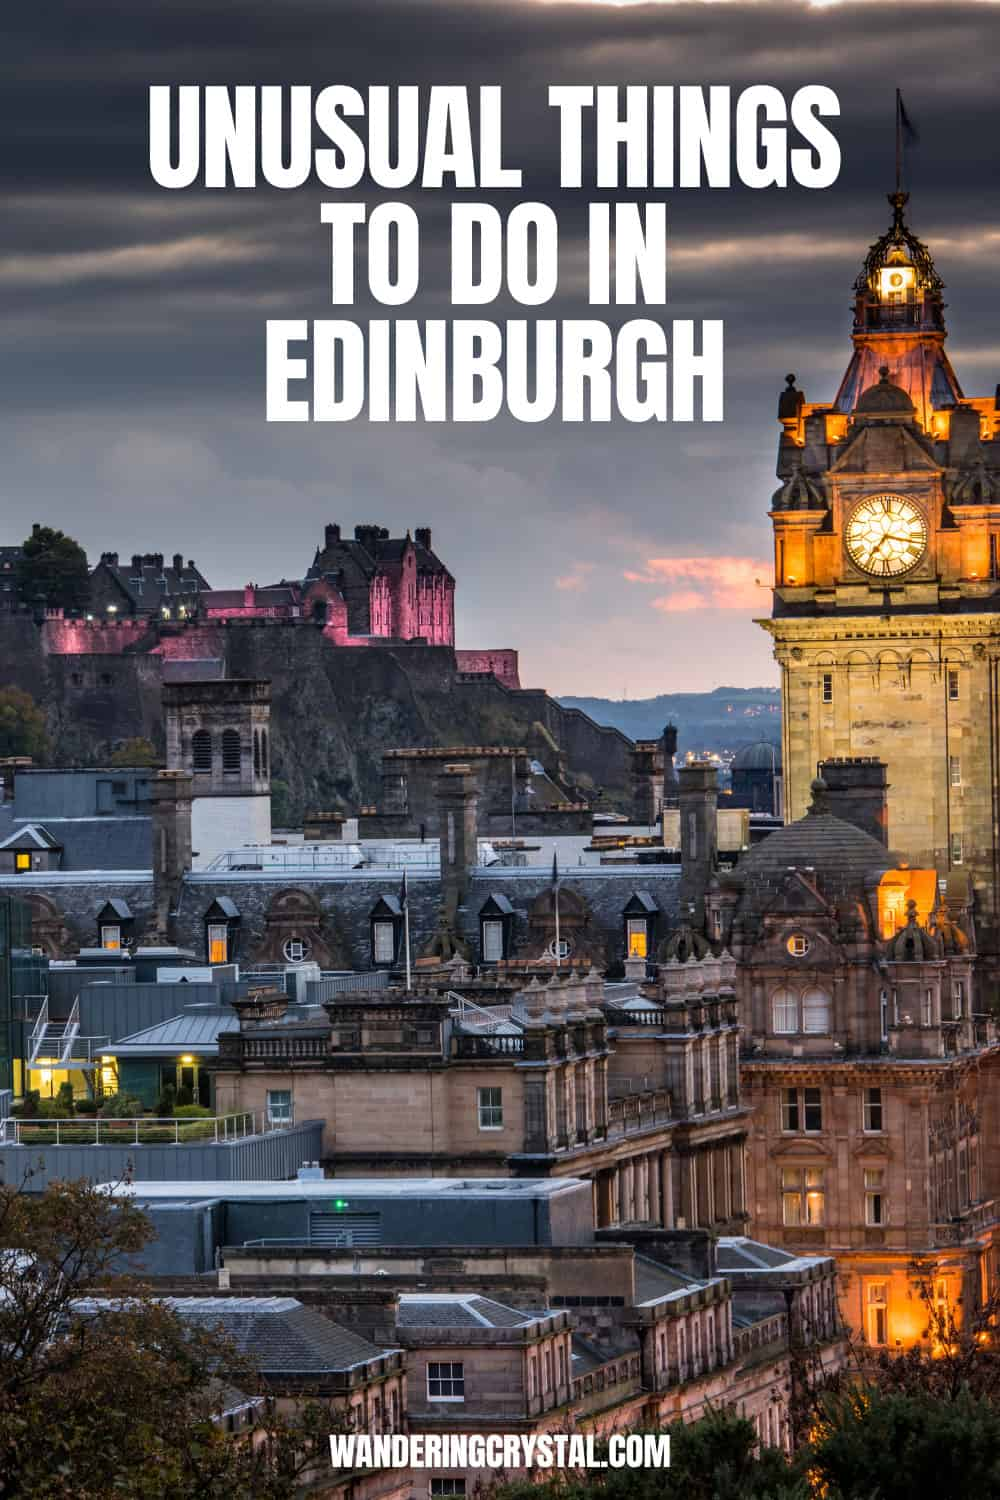 Unusual Things to do in Edinburgh Scotland